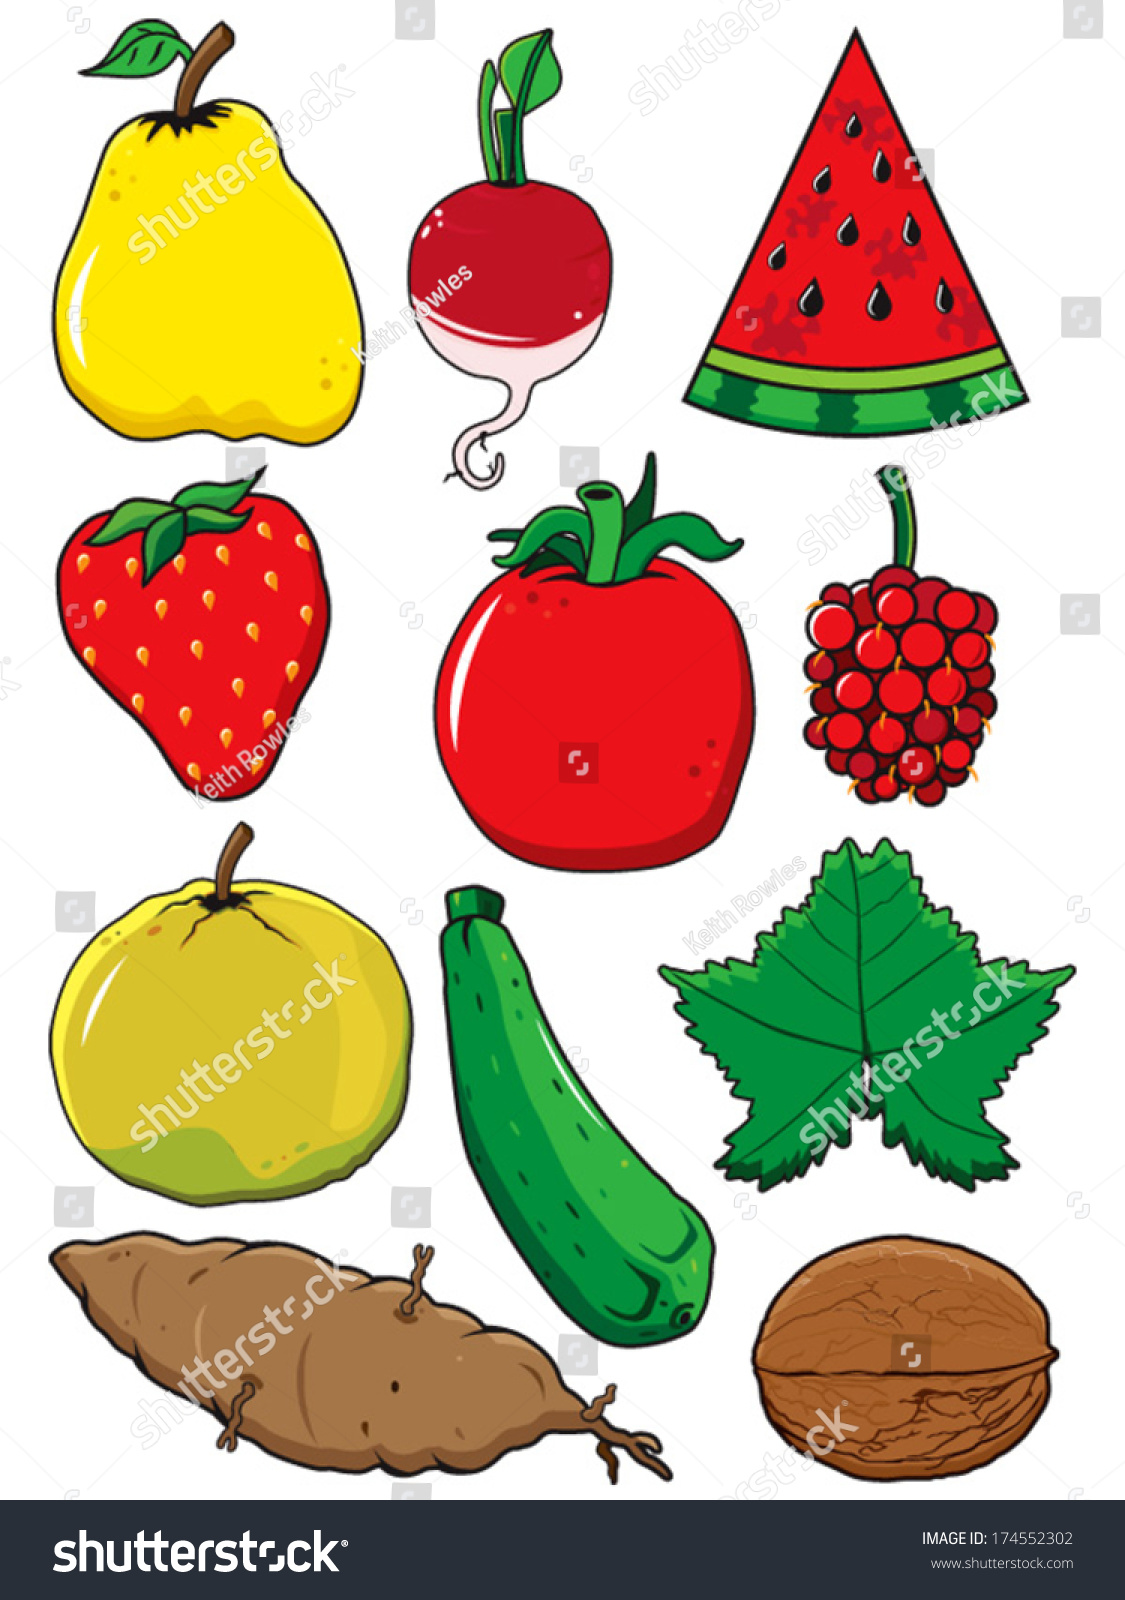 fresh fruit and vegetable vectors starting with letters q through to z including watermelon slice